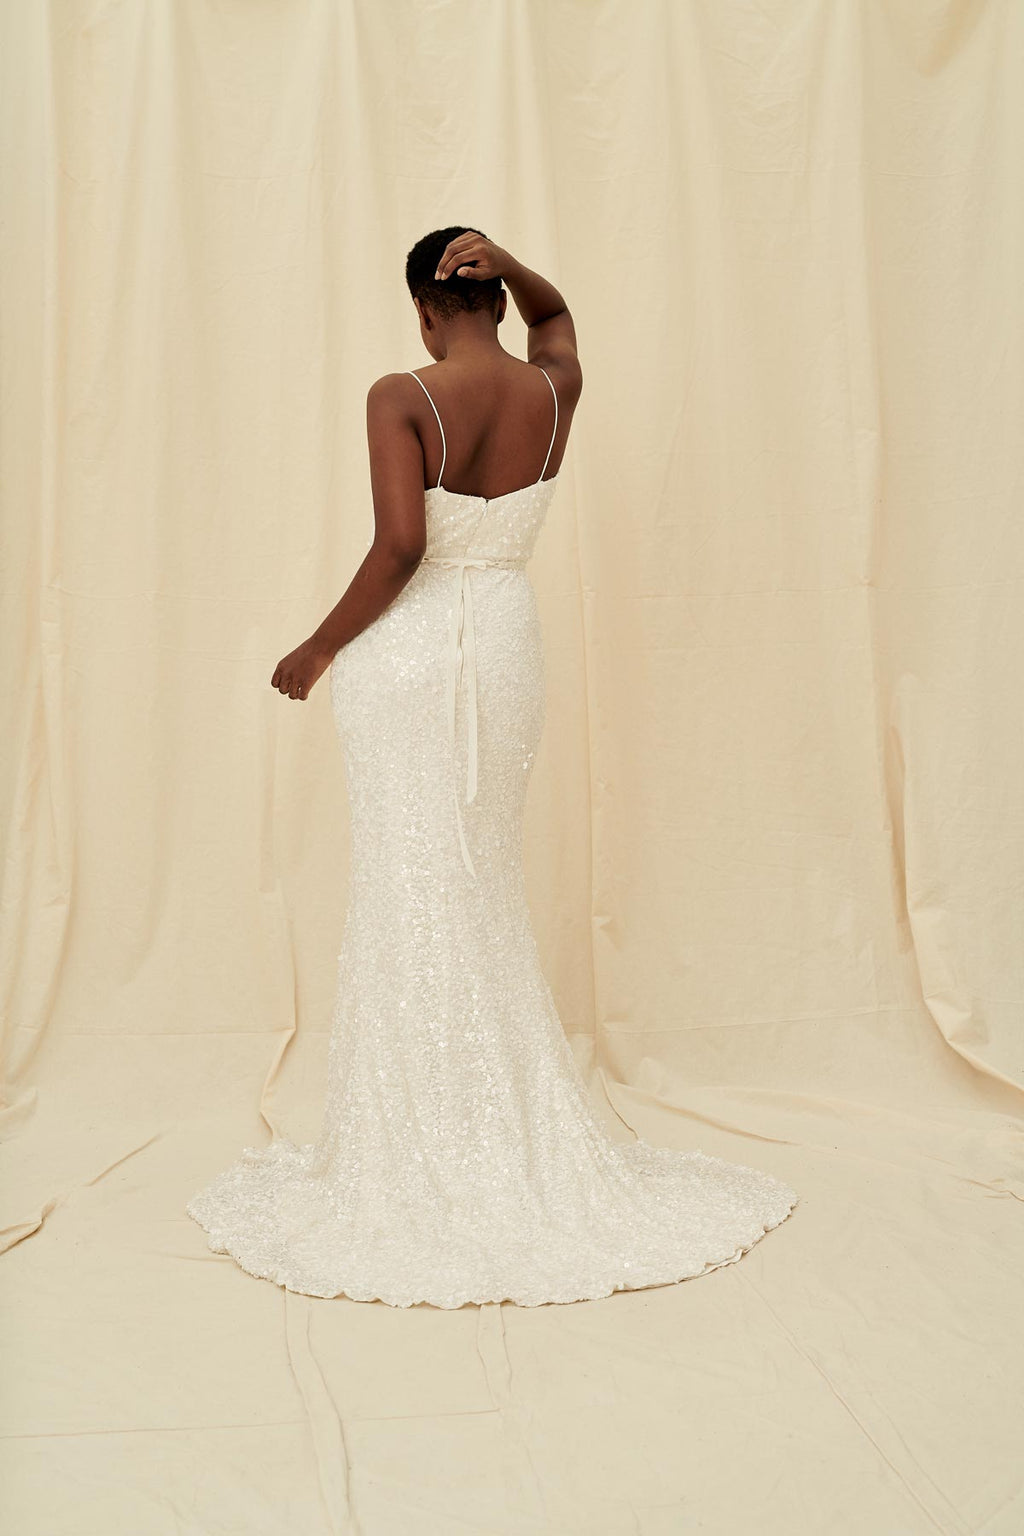 Pearly matte sequin wedding gown with spaghetti straps, a sheath skirt, and a train